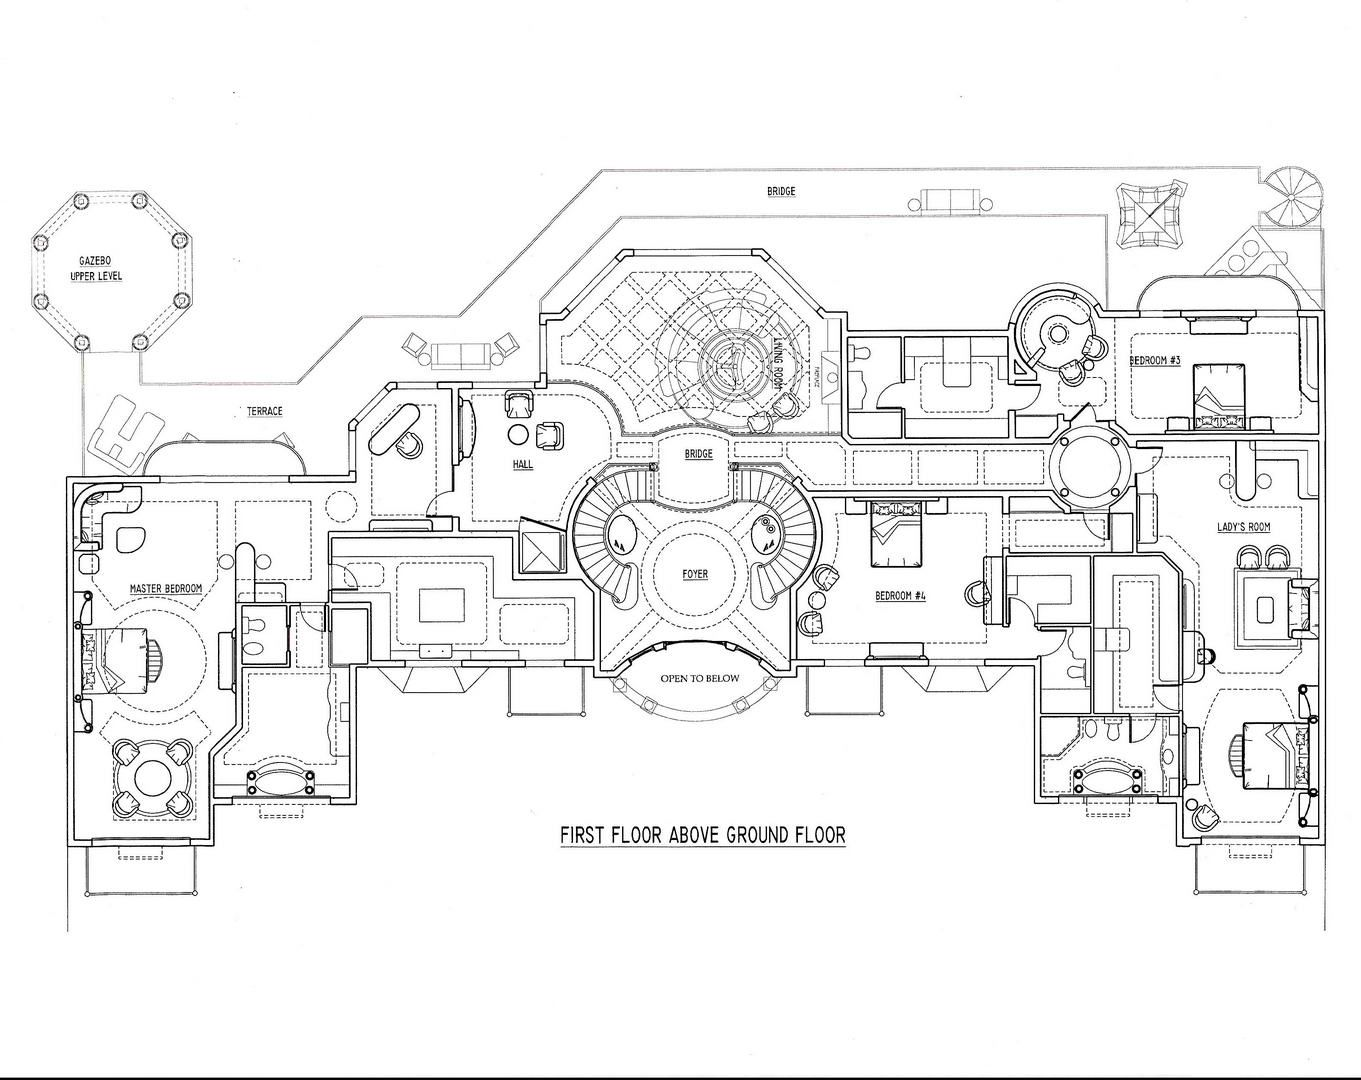 Abuja Africa French Chateau 15 000 Sf Mansion Floor Plan Floor Plan Design French Chateau